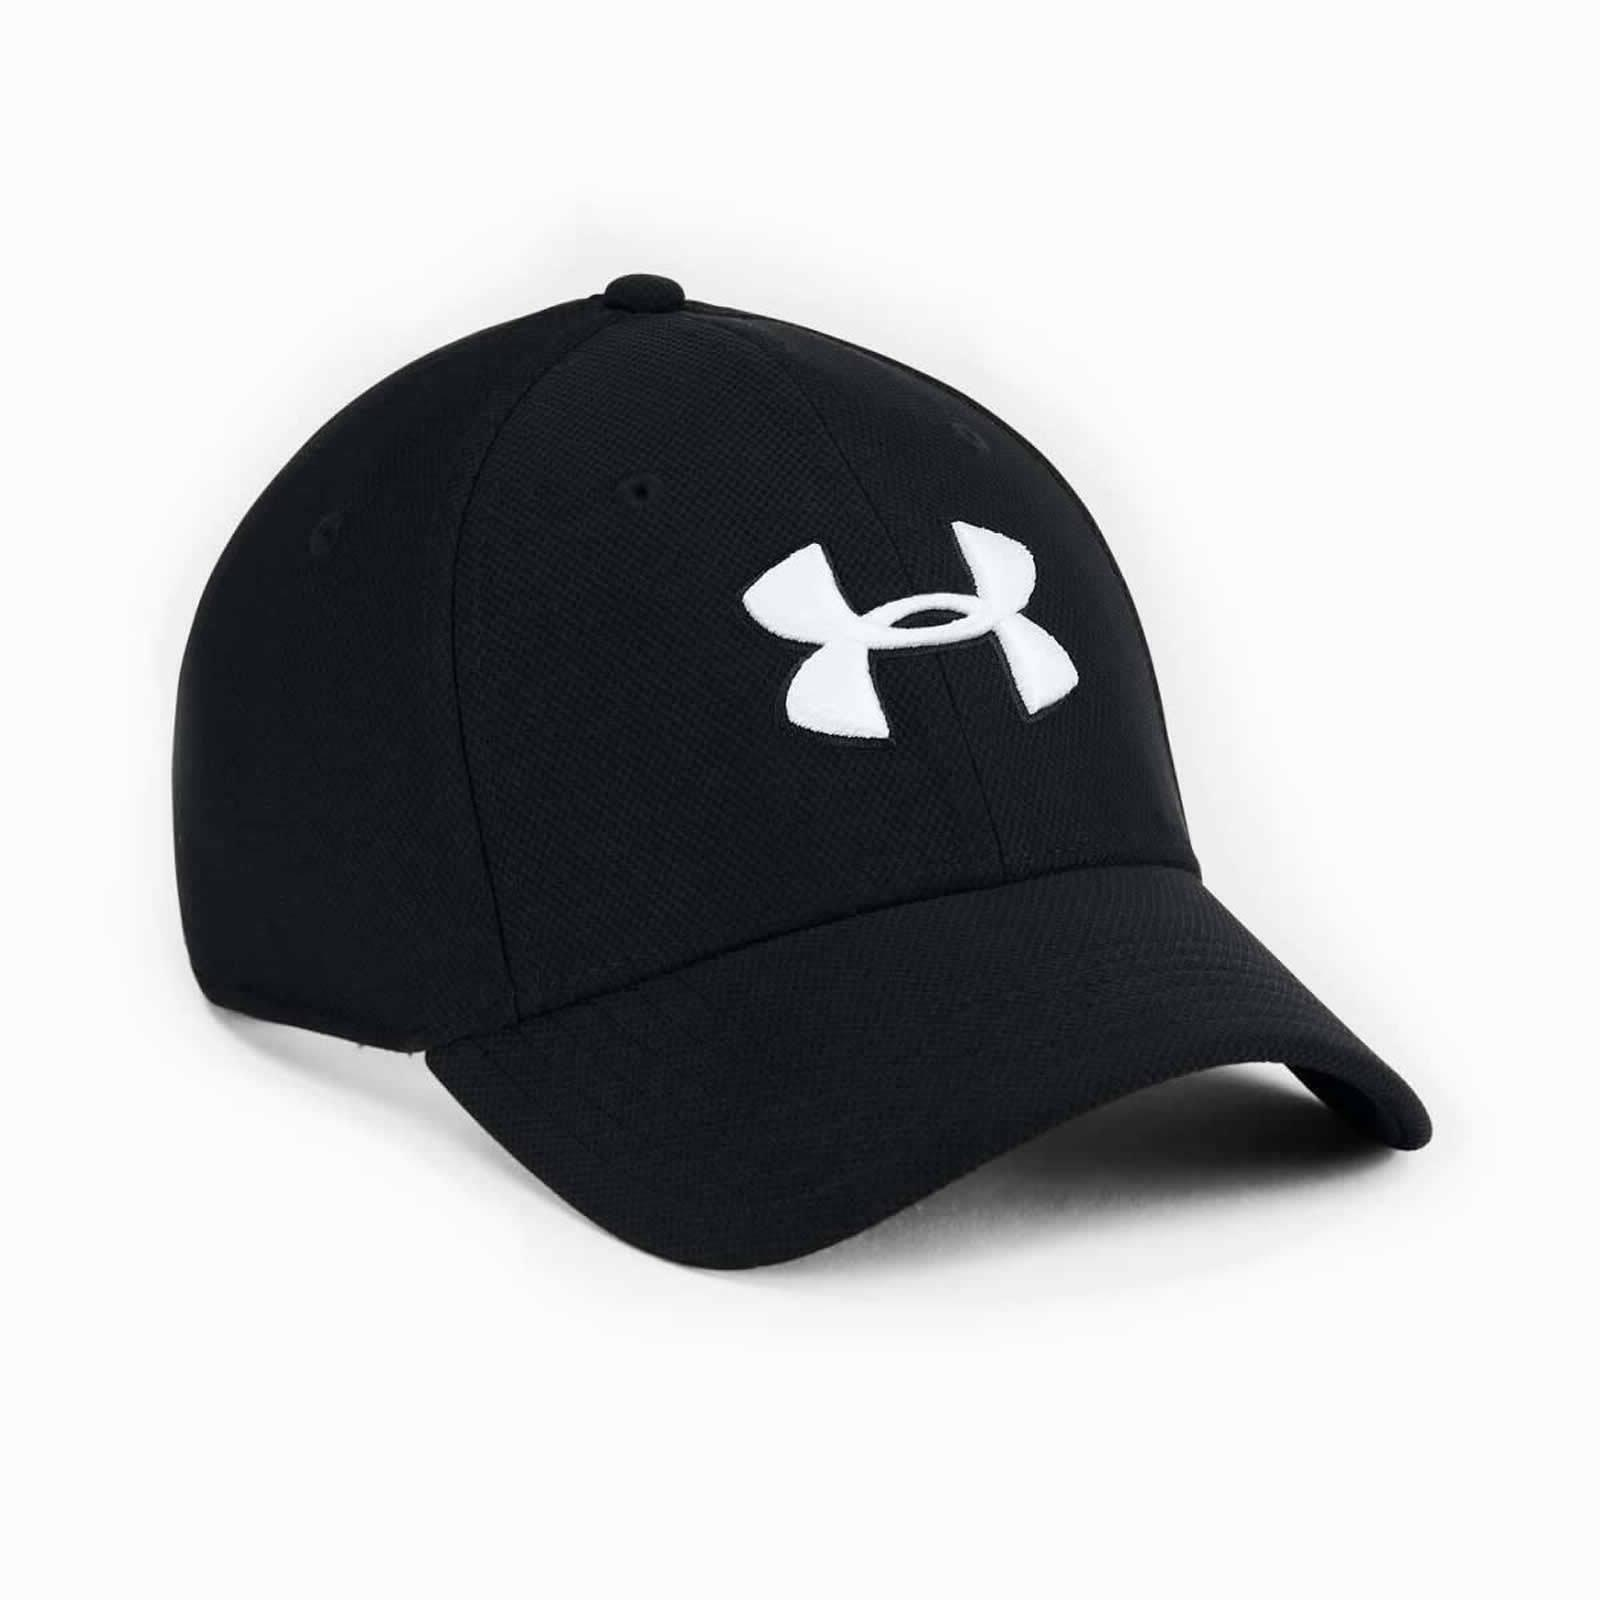 Adjustable Golf Baseball Unisex Hat